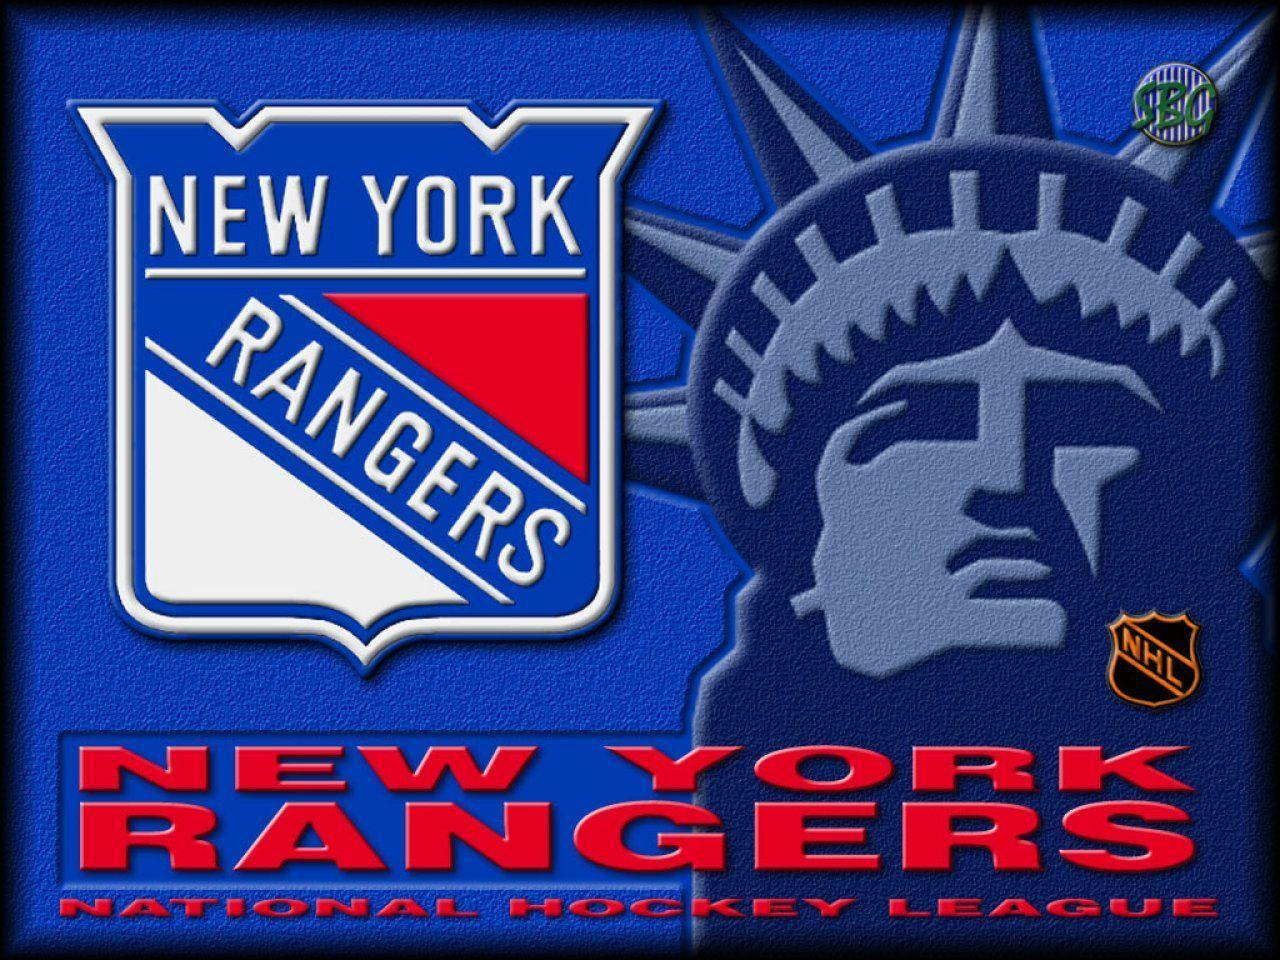 Free NHL and hockey wallpaper - New York Rangers